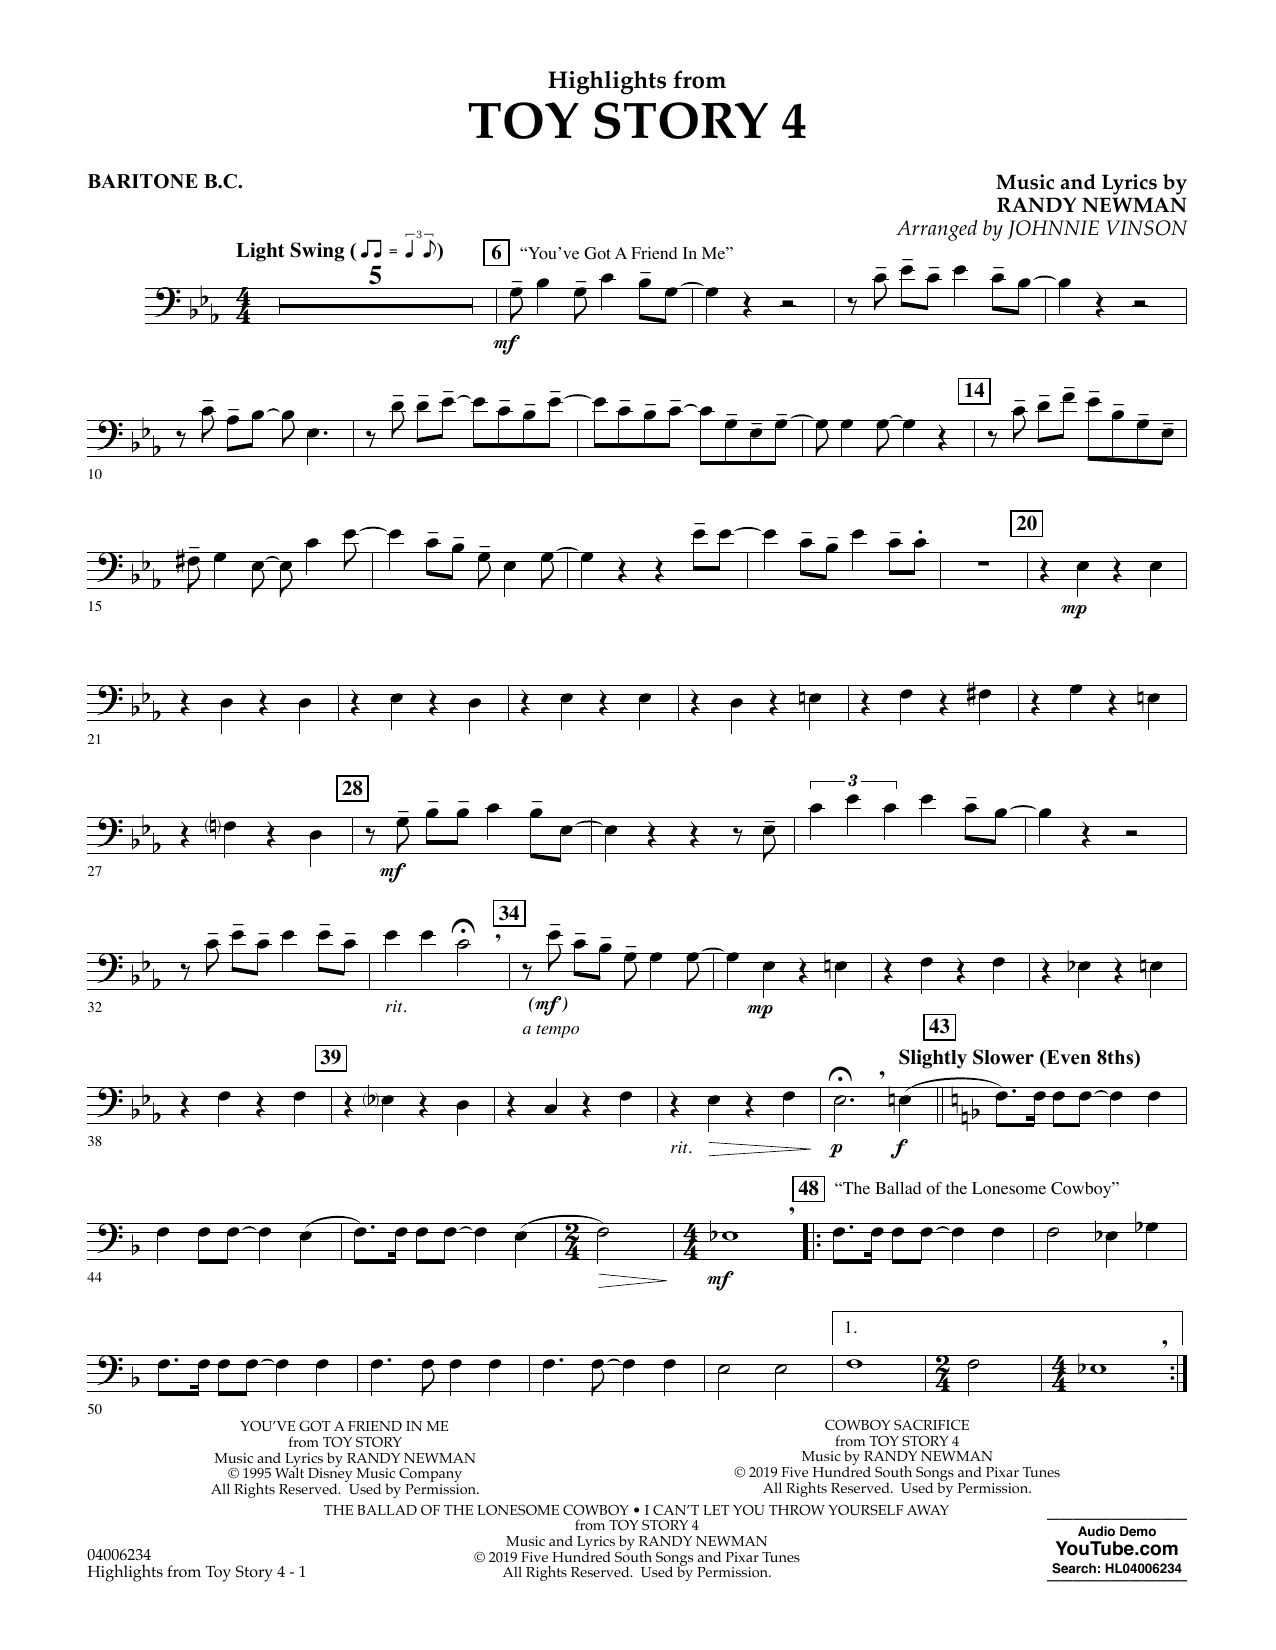 Highlights from Toy Story 4 (arr. Johnnie Vinson) - Baritone B.C. (Concert Band)